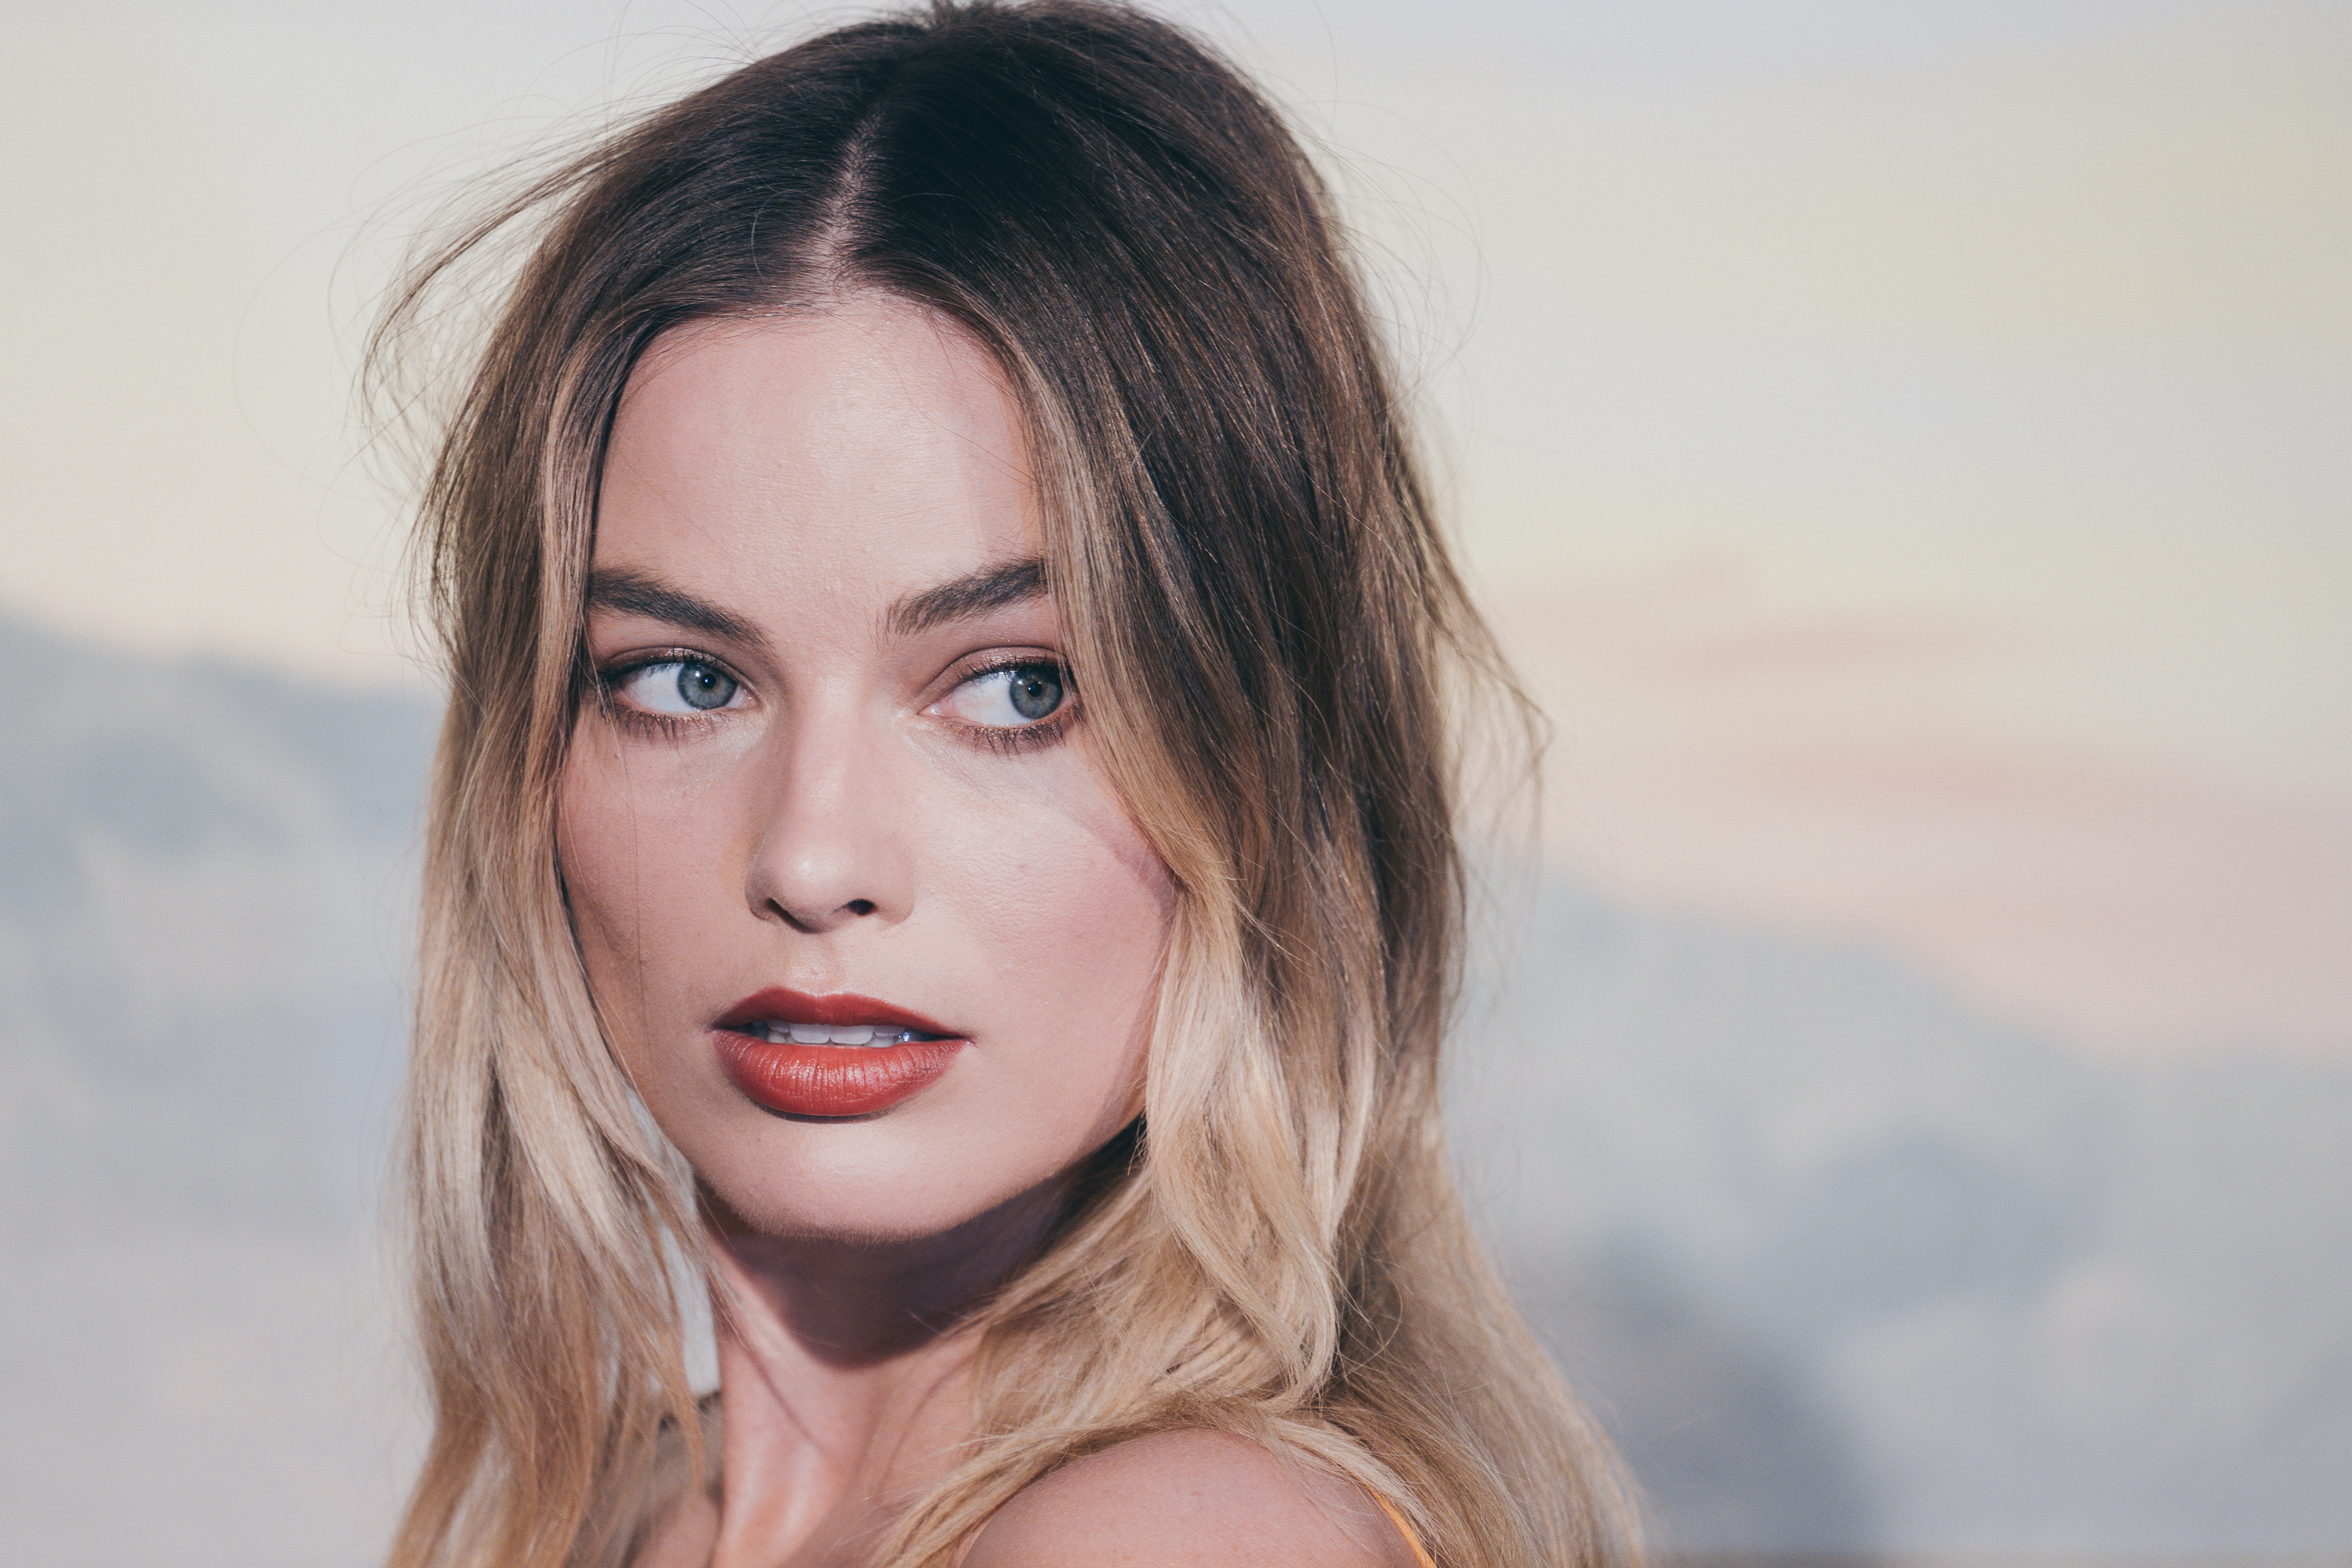 """Australian actress Margot Robbie poses during a photocall ahead of the Italian Premiere of Tarantino's latest movie """"Once Upon A Time In Hollywood"""" in downtown Rome on August 2, 2019 (Photo by Luca Carlino/NurPhoto via Getty Images)"""